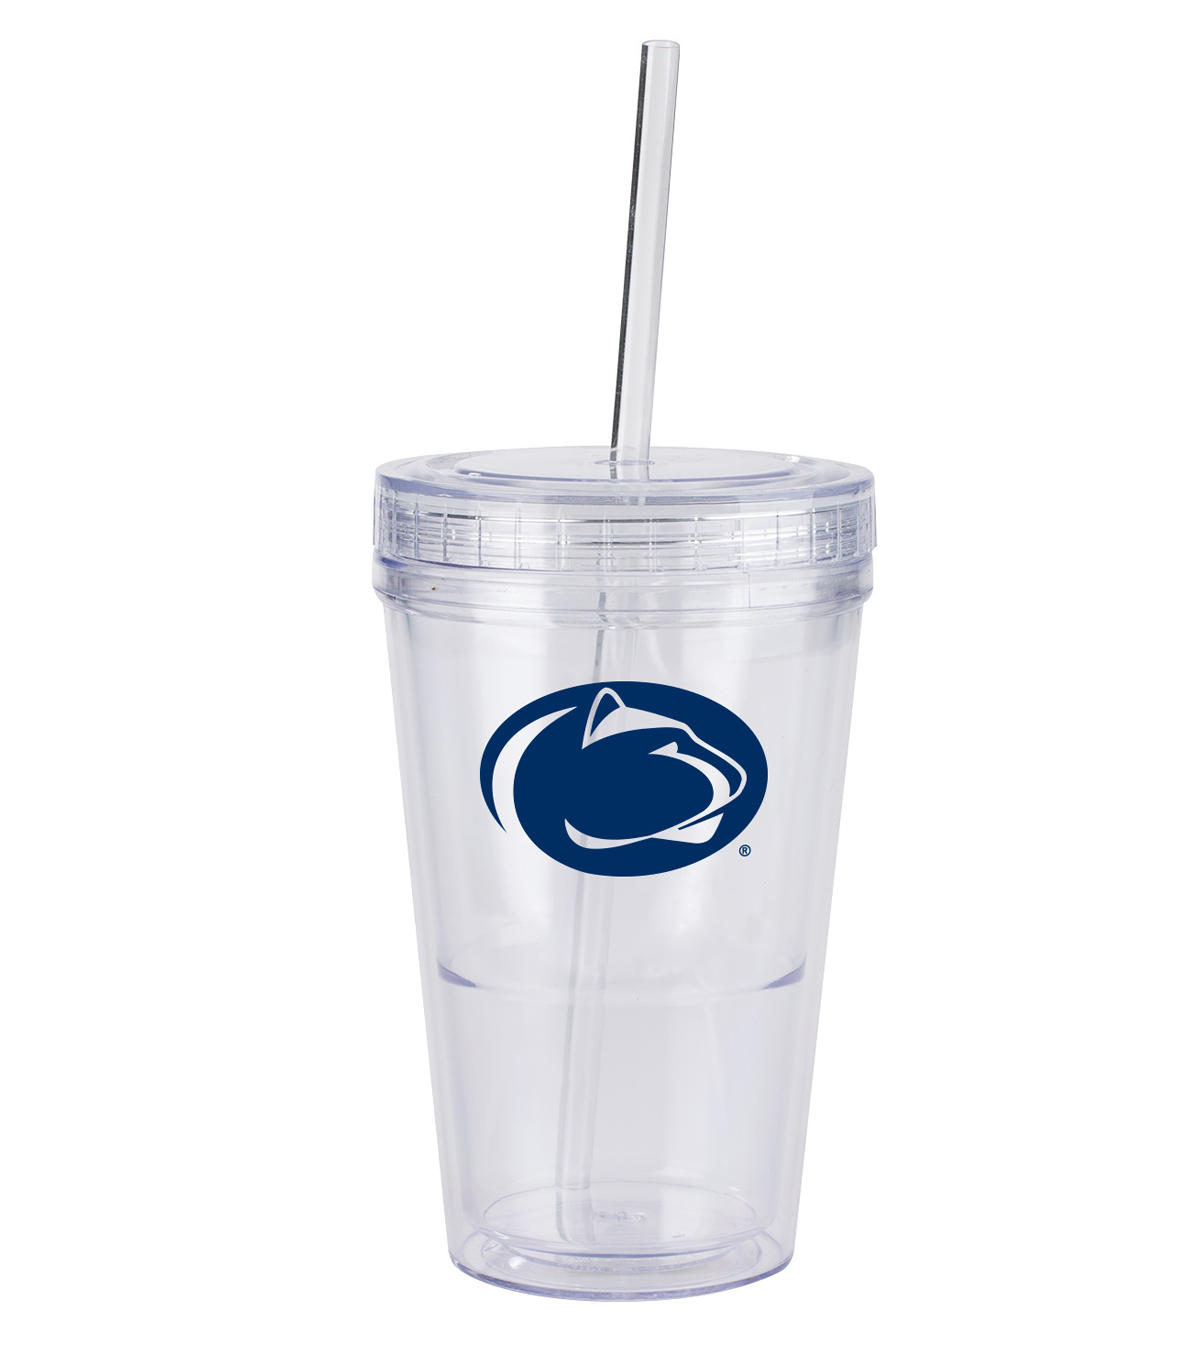 Penn State University Nittany Lions 16oz Cup